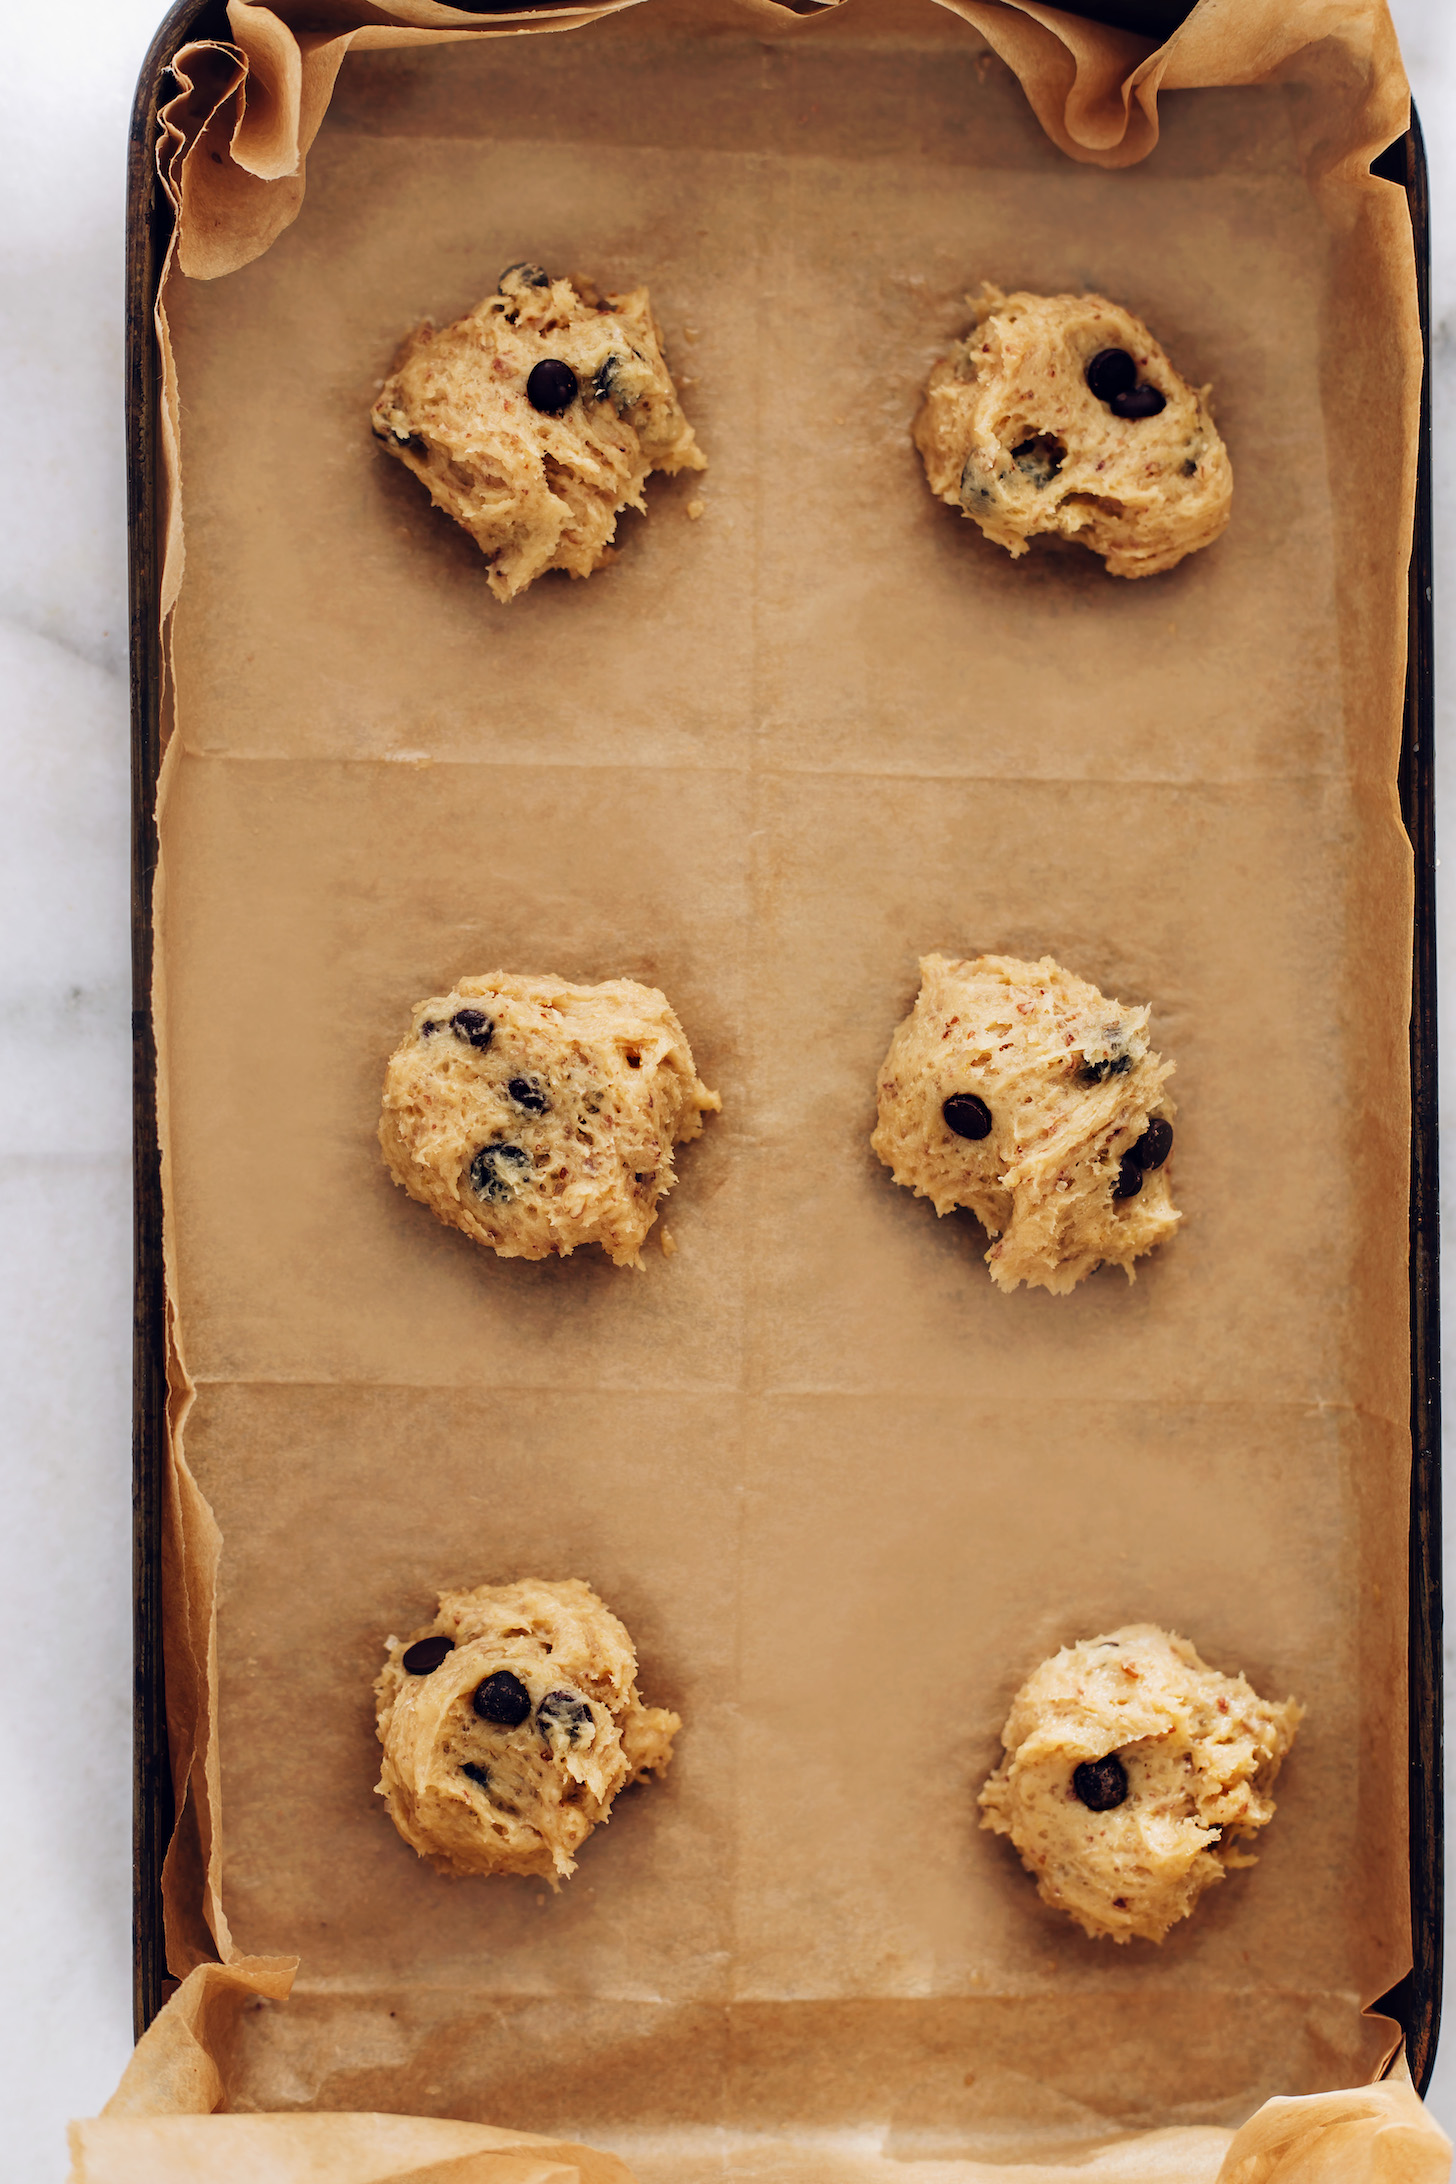 Balls of chocolate chip cookie dough on a parchment-lined baking sheet